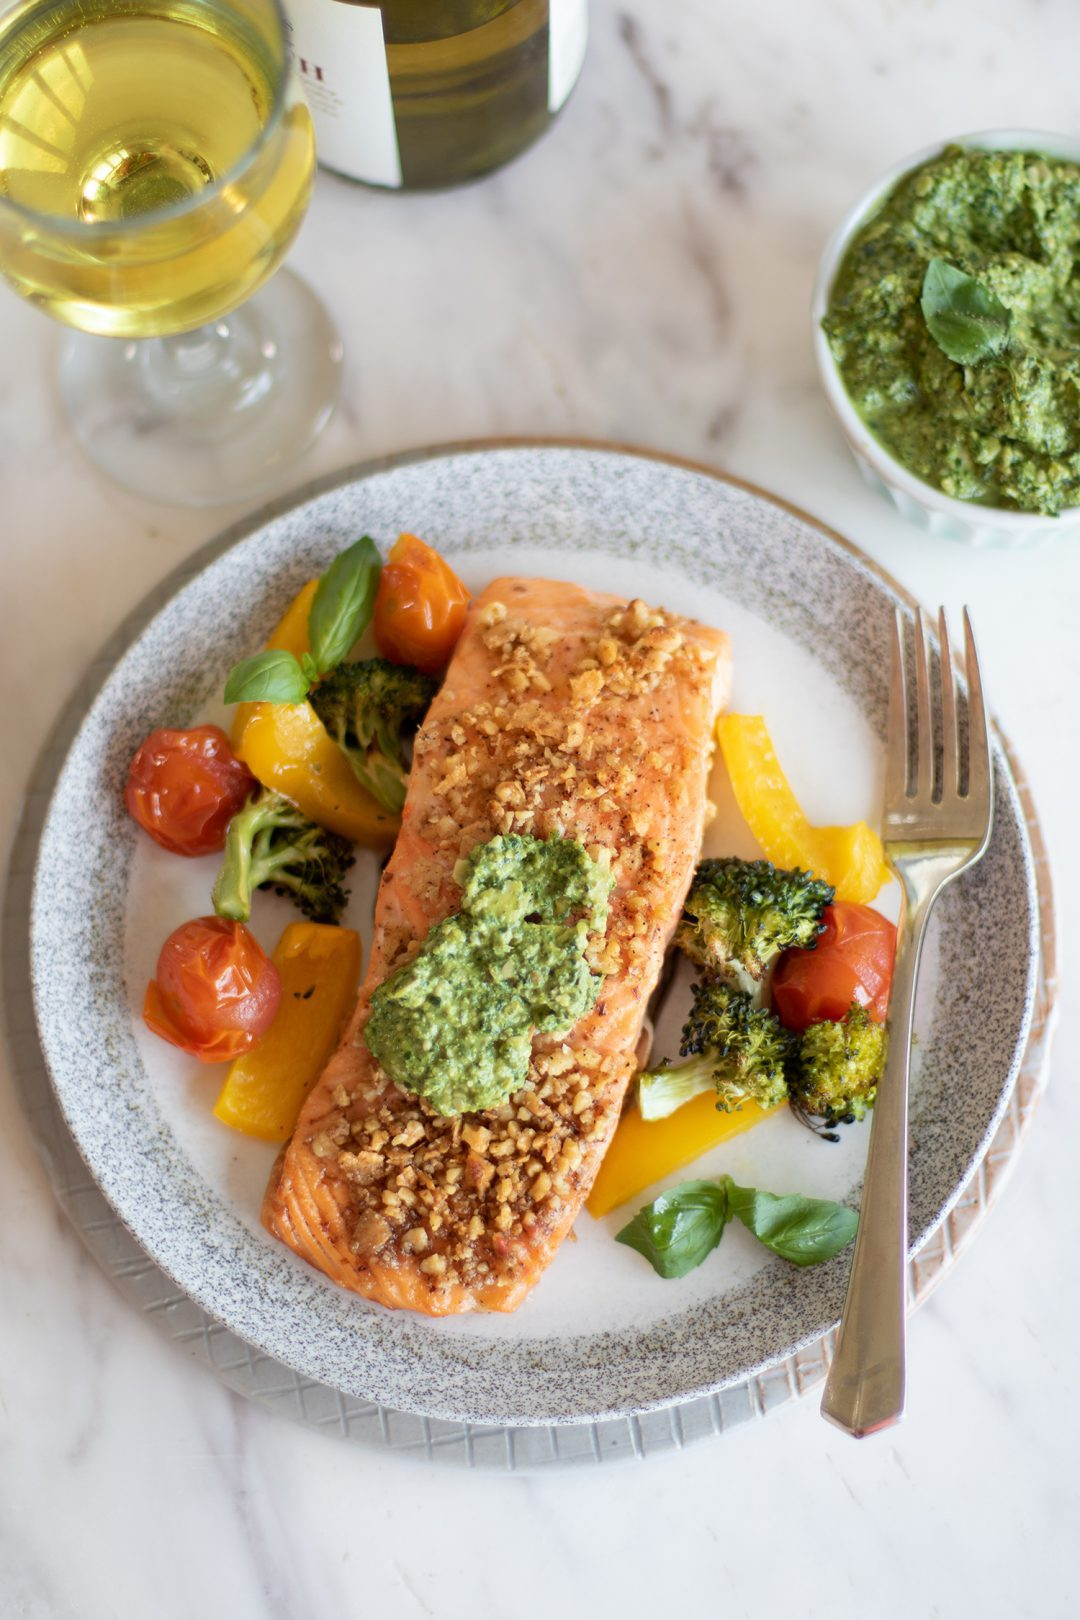 Baked Pesto Salmon on a plate next to a fork.